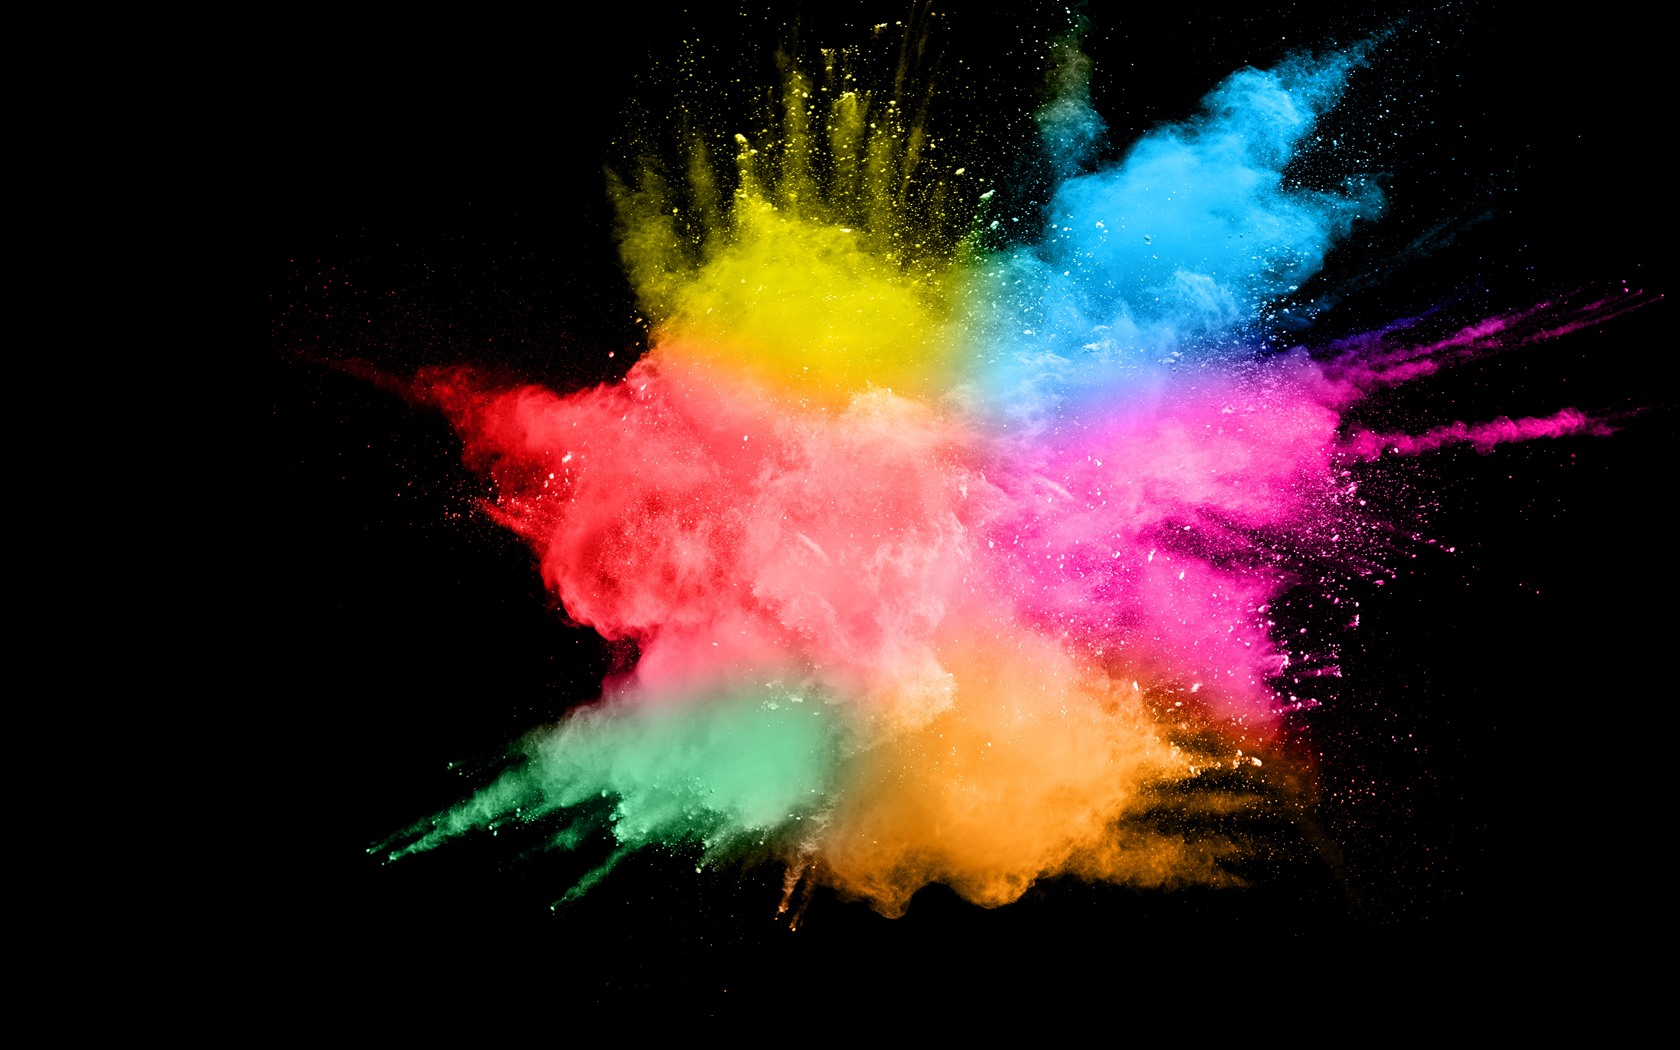 Best Iphone 4s Wallpapers Hd Wallpaper Colorful Smoke Splash Abstract Black